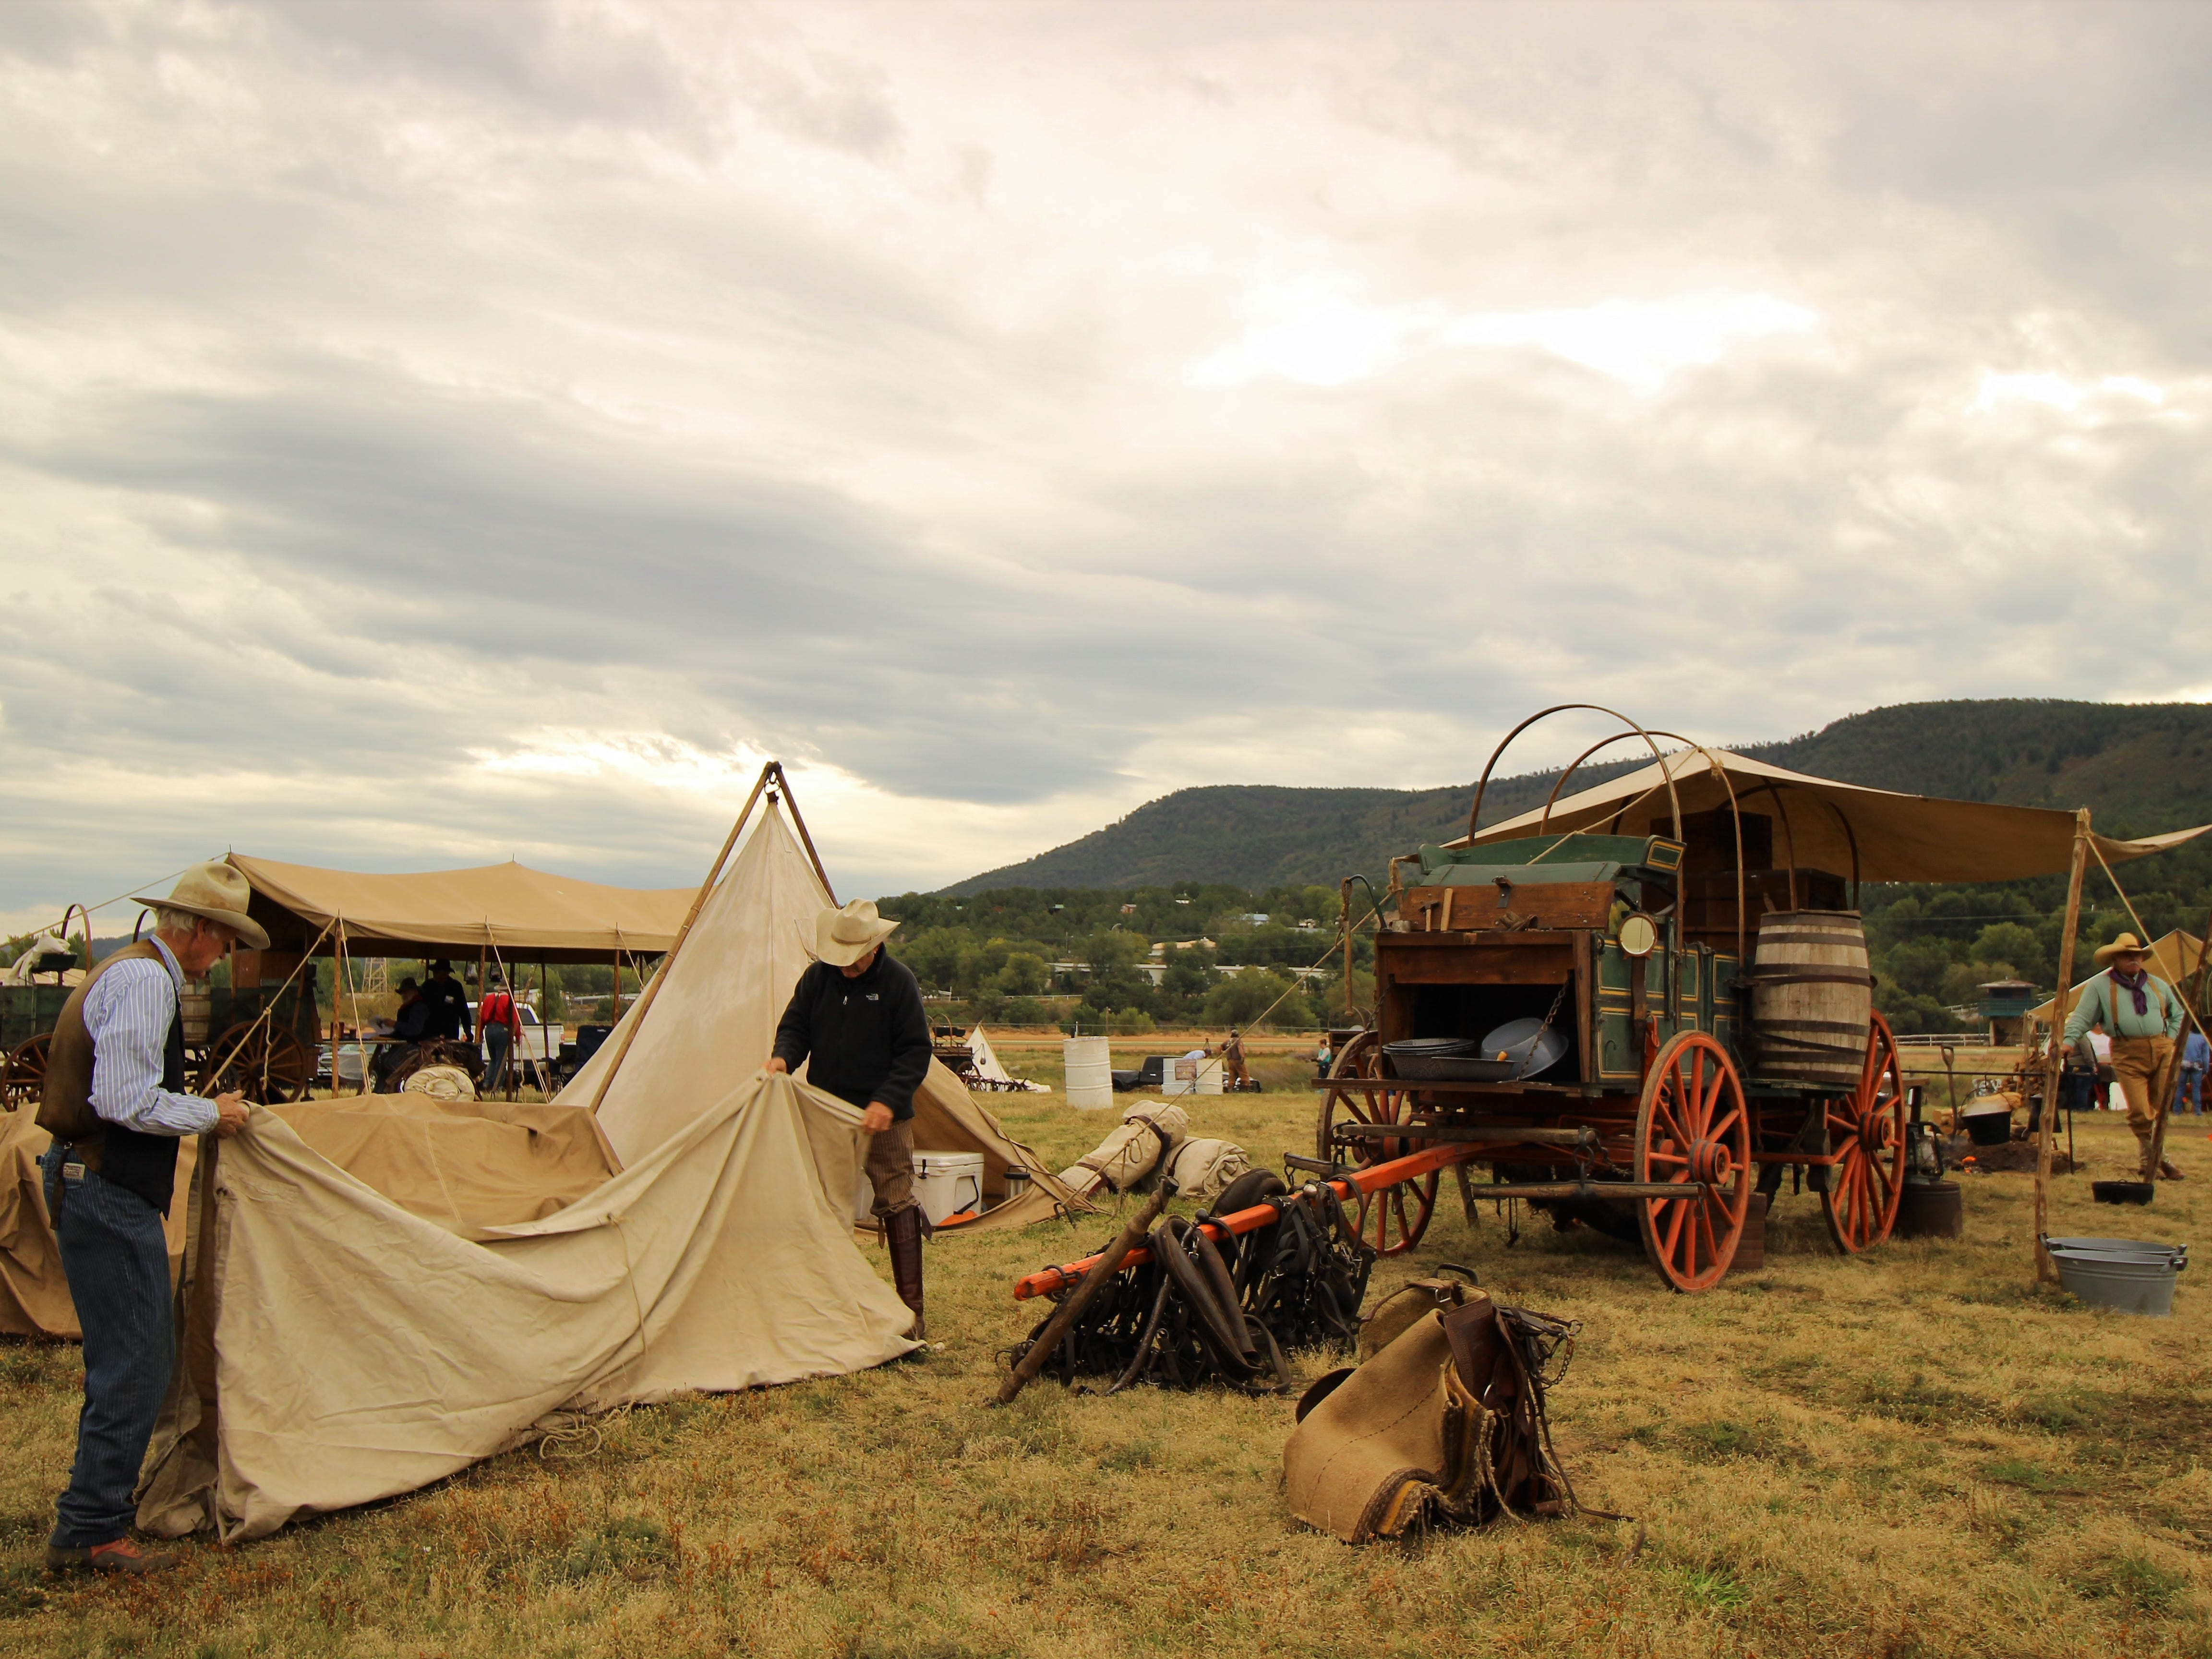 Cowboys set up camp at the 2017 Lincoln County Cowboy Symposium under the vast New Mexico skies.